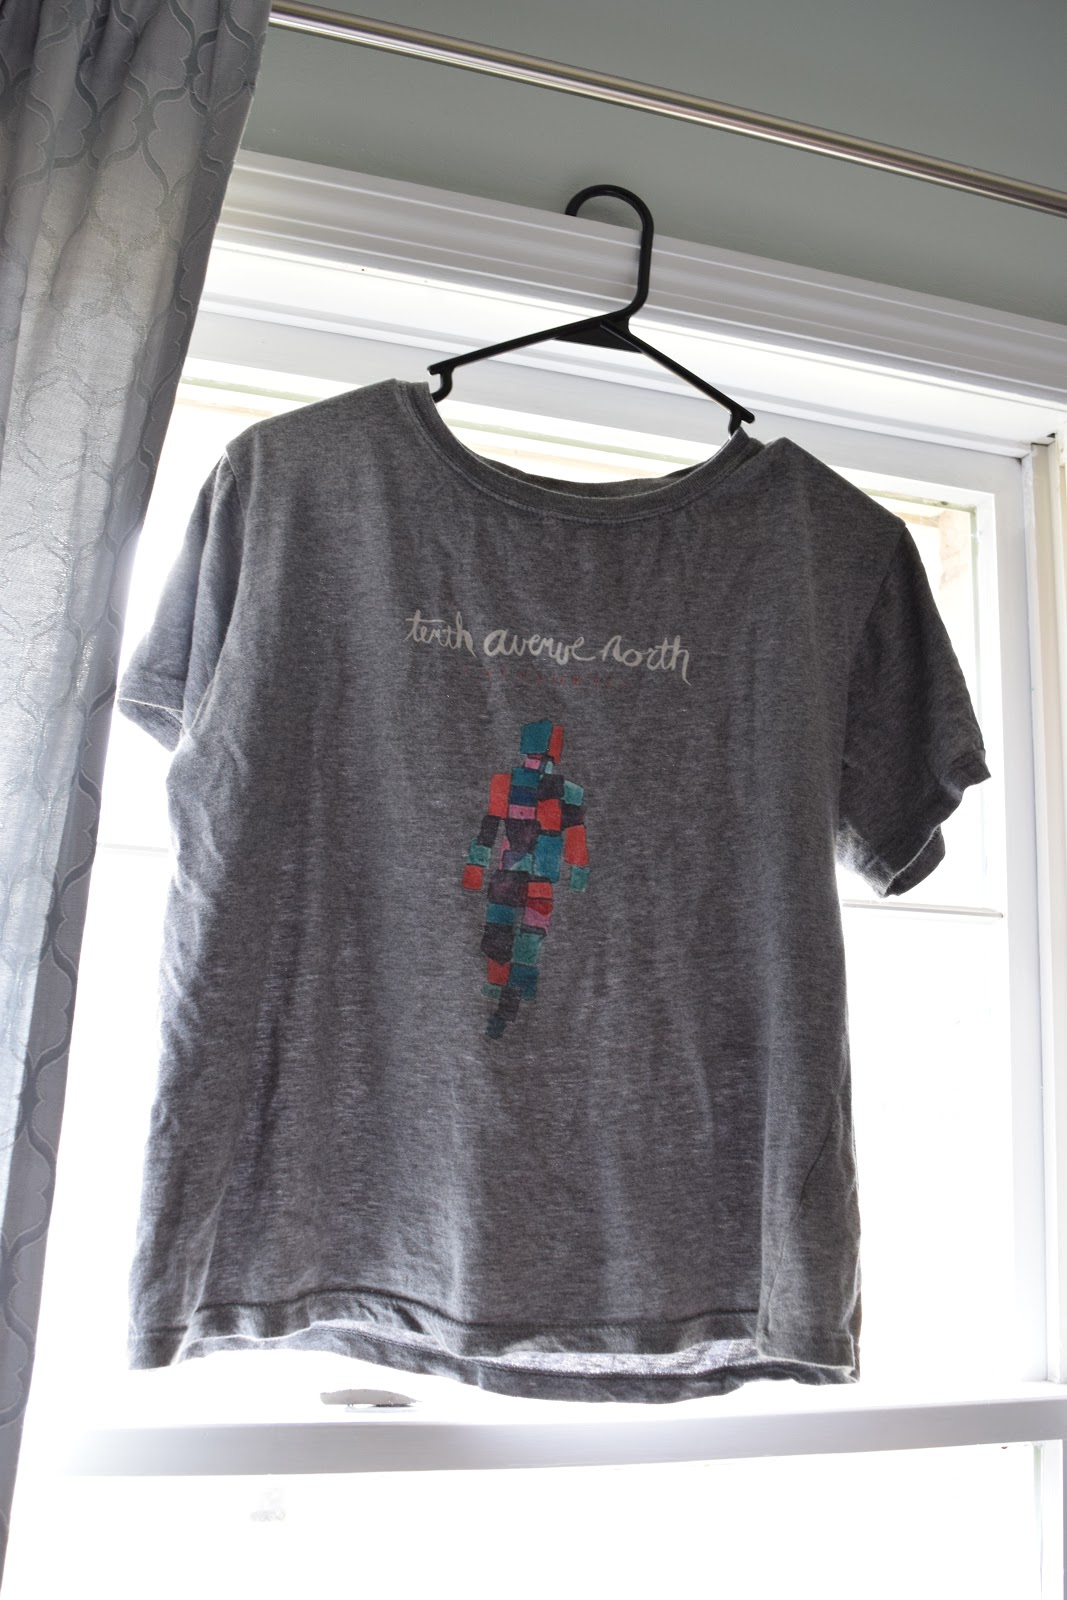 The light meets the dark for Tenth avenue north t shirts